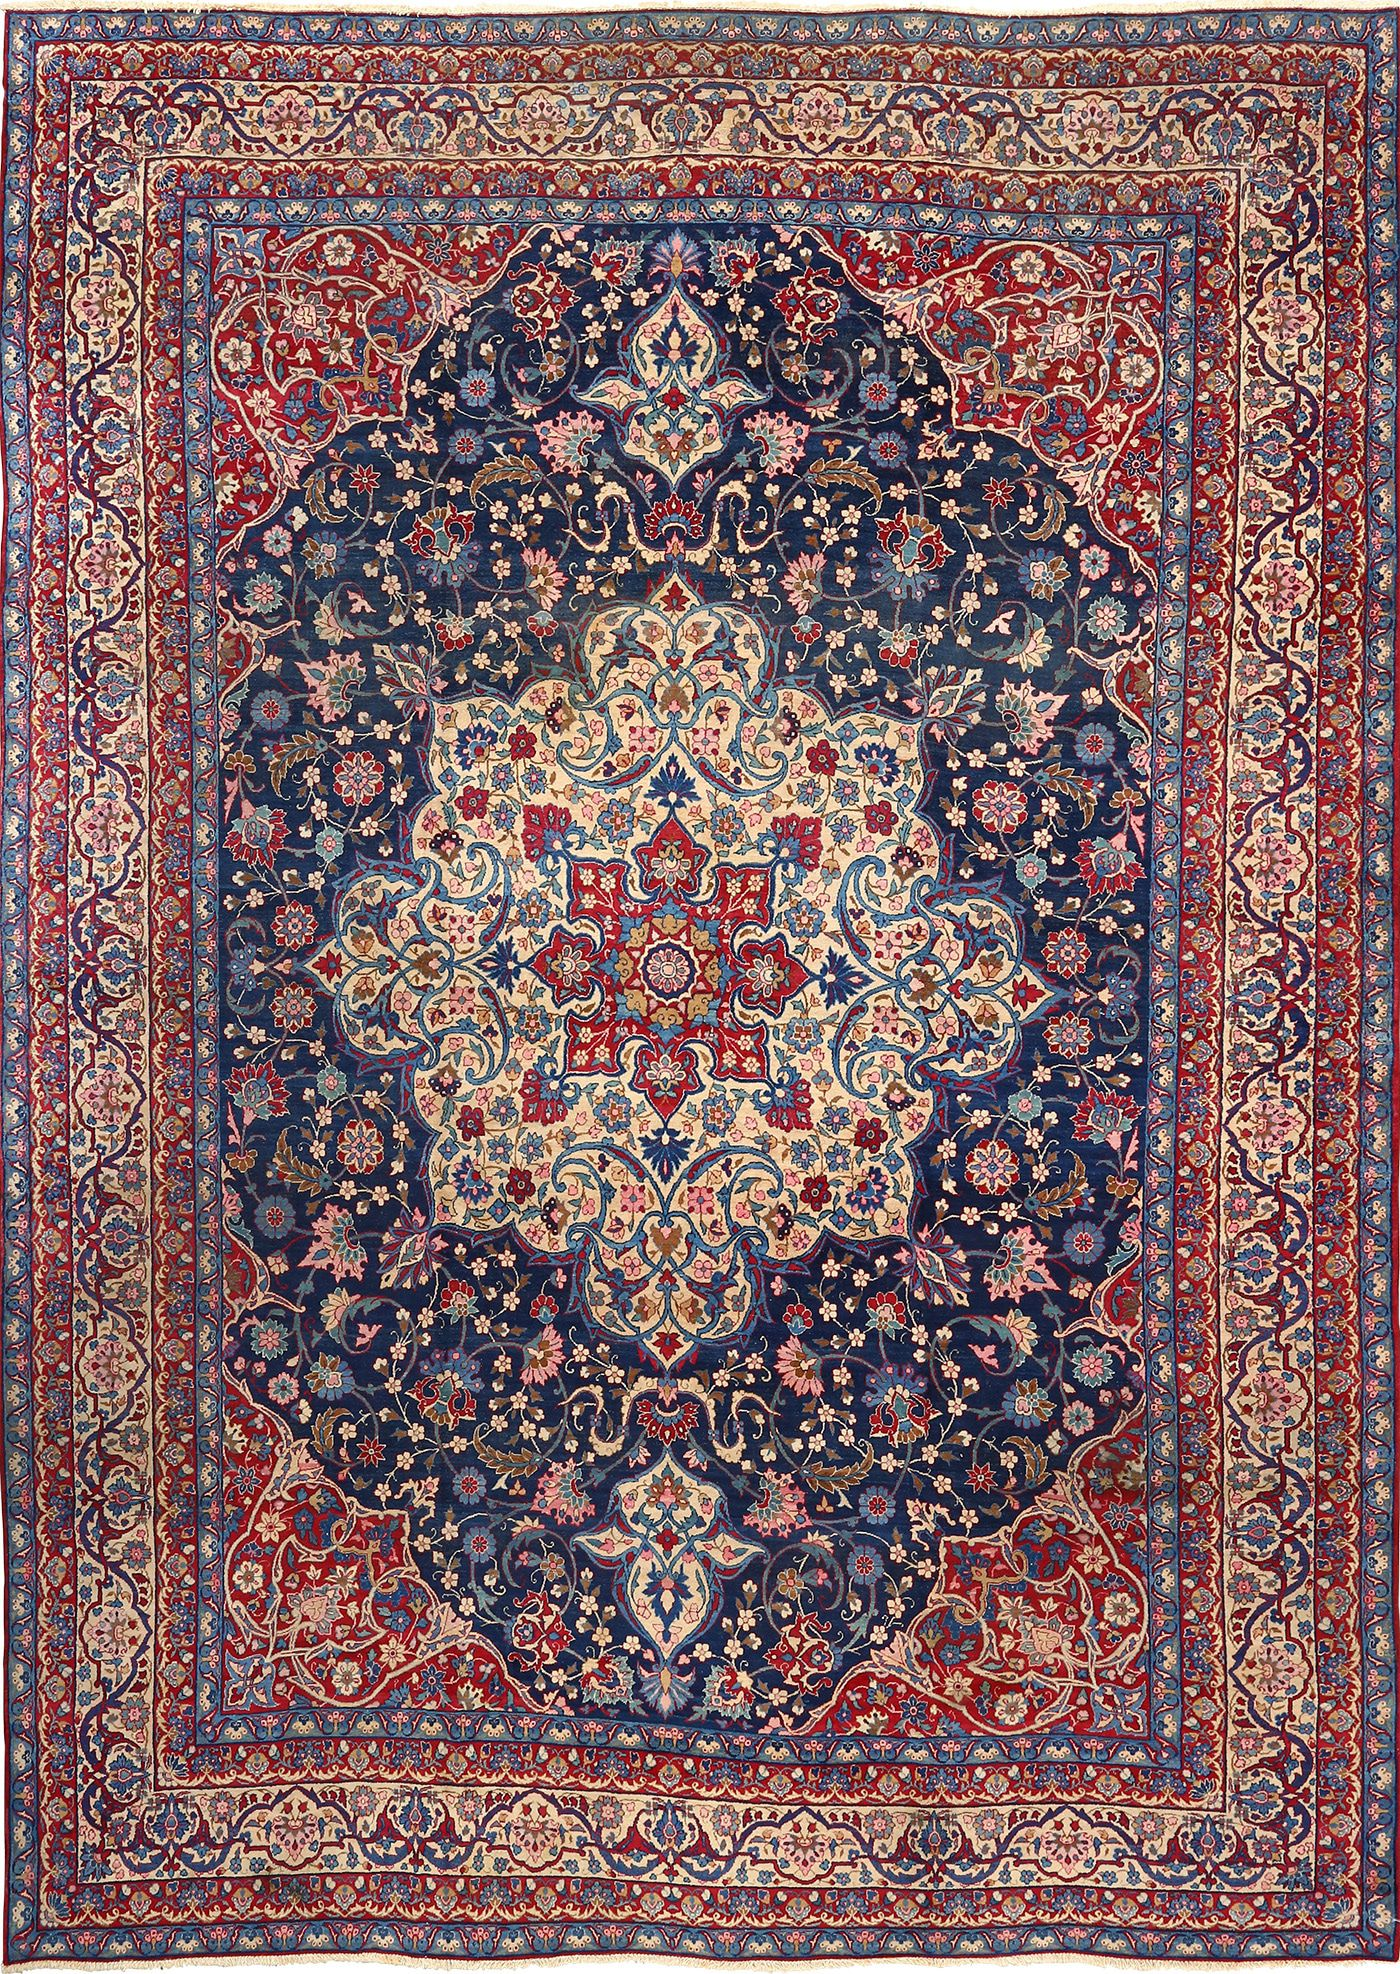 persian rugs antique blue bakground isfahan persian rug 51066 nazmiyal RZFOTJQ